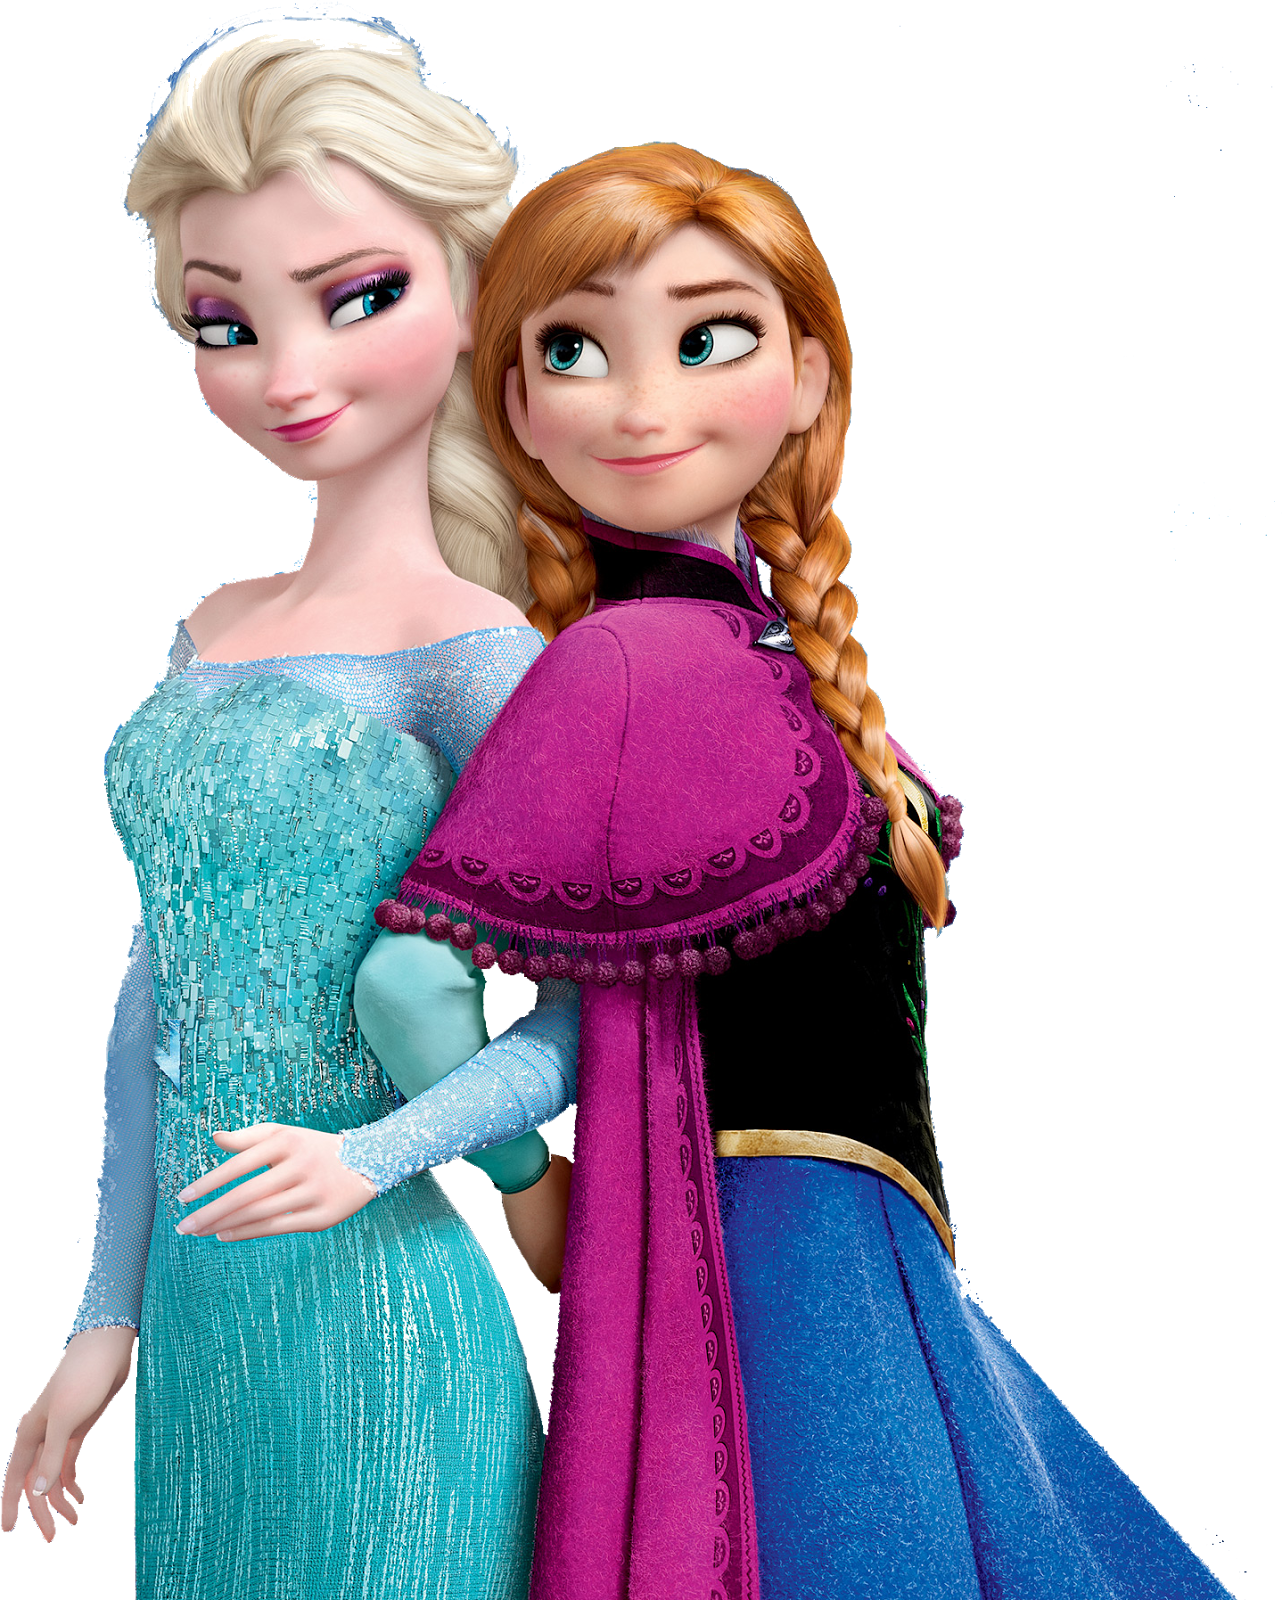 Anna and elsa png. Frozen transparent images all